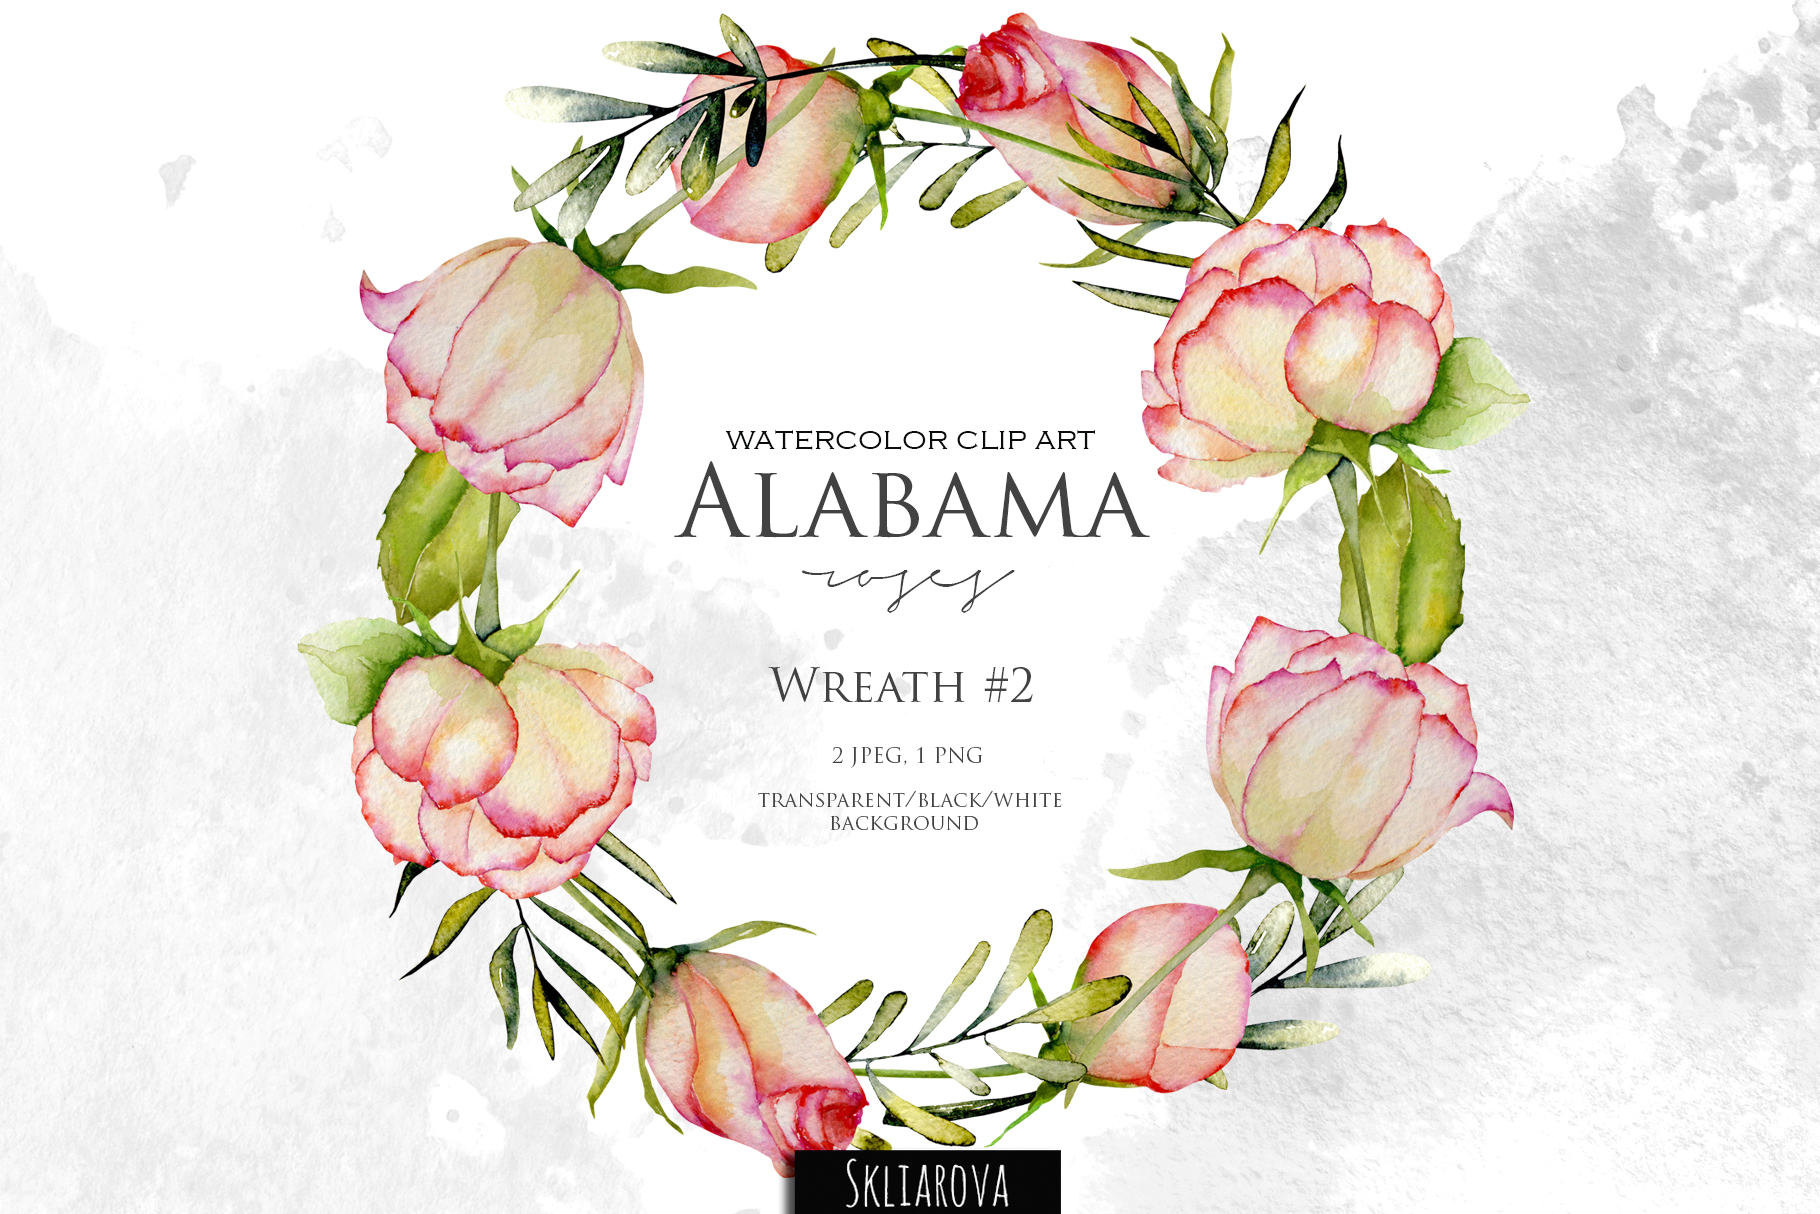 Alabama roses. Wreath #2 example image 1